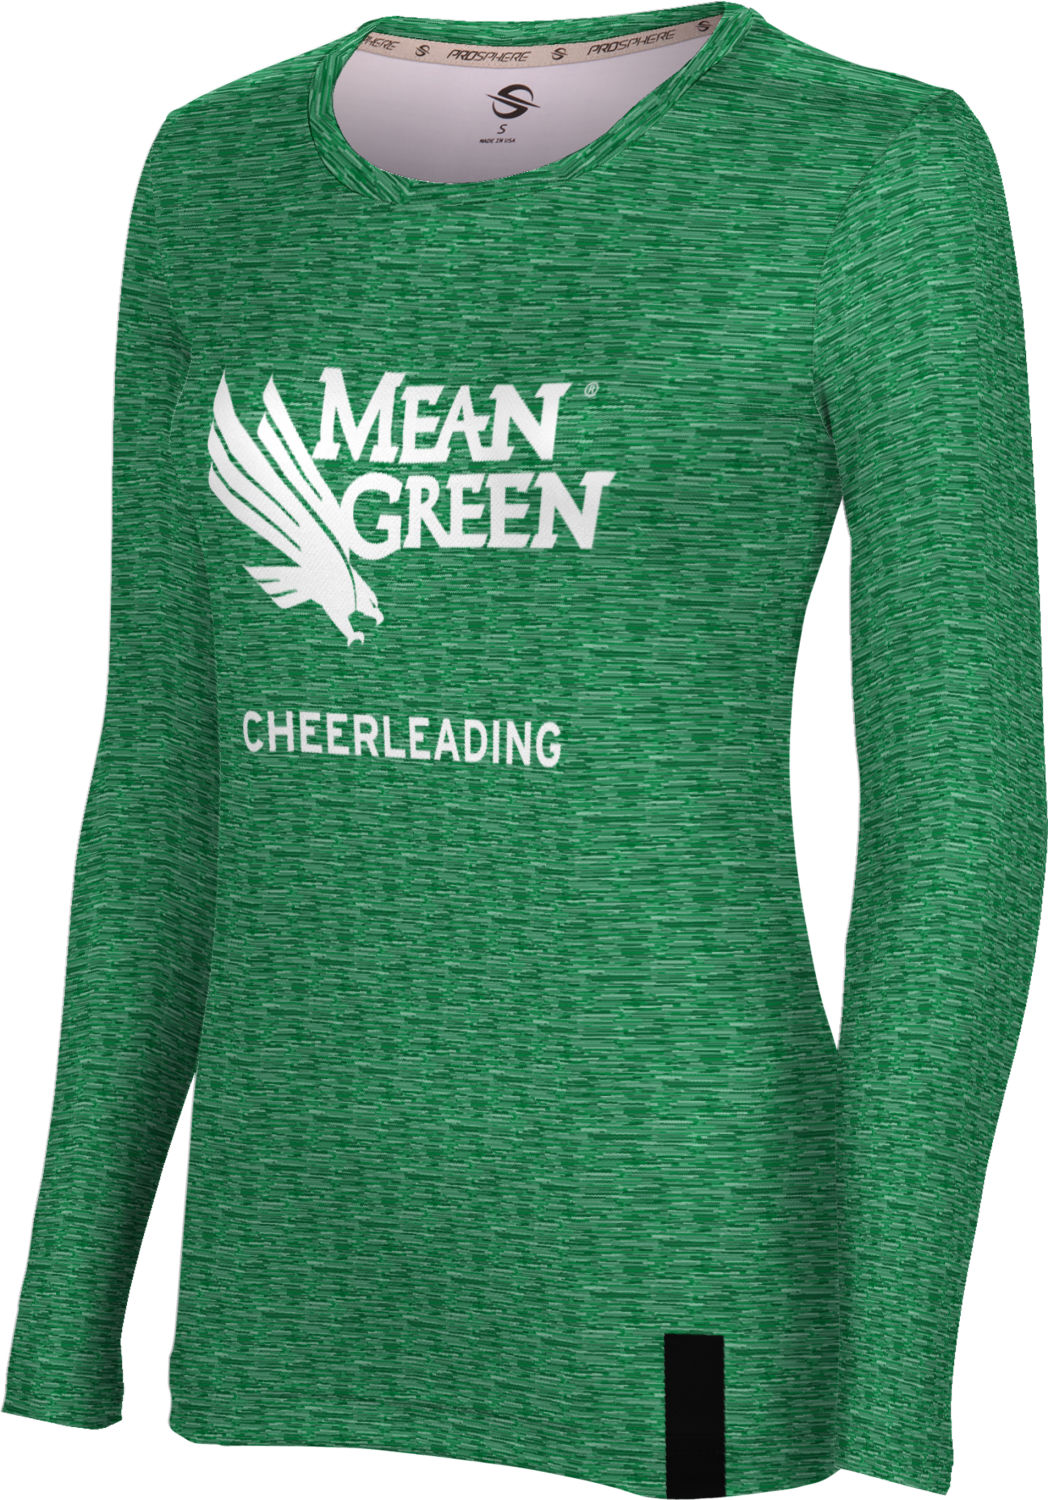 Women's ProSphere Sublimated Long Sleeve Tee - Cheerleading